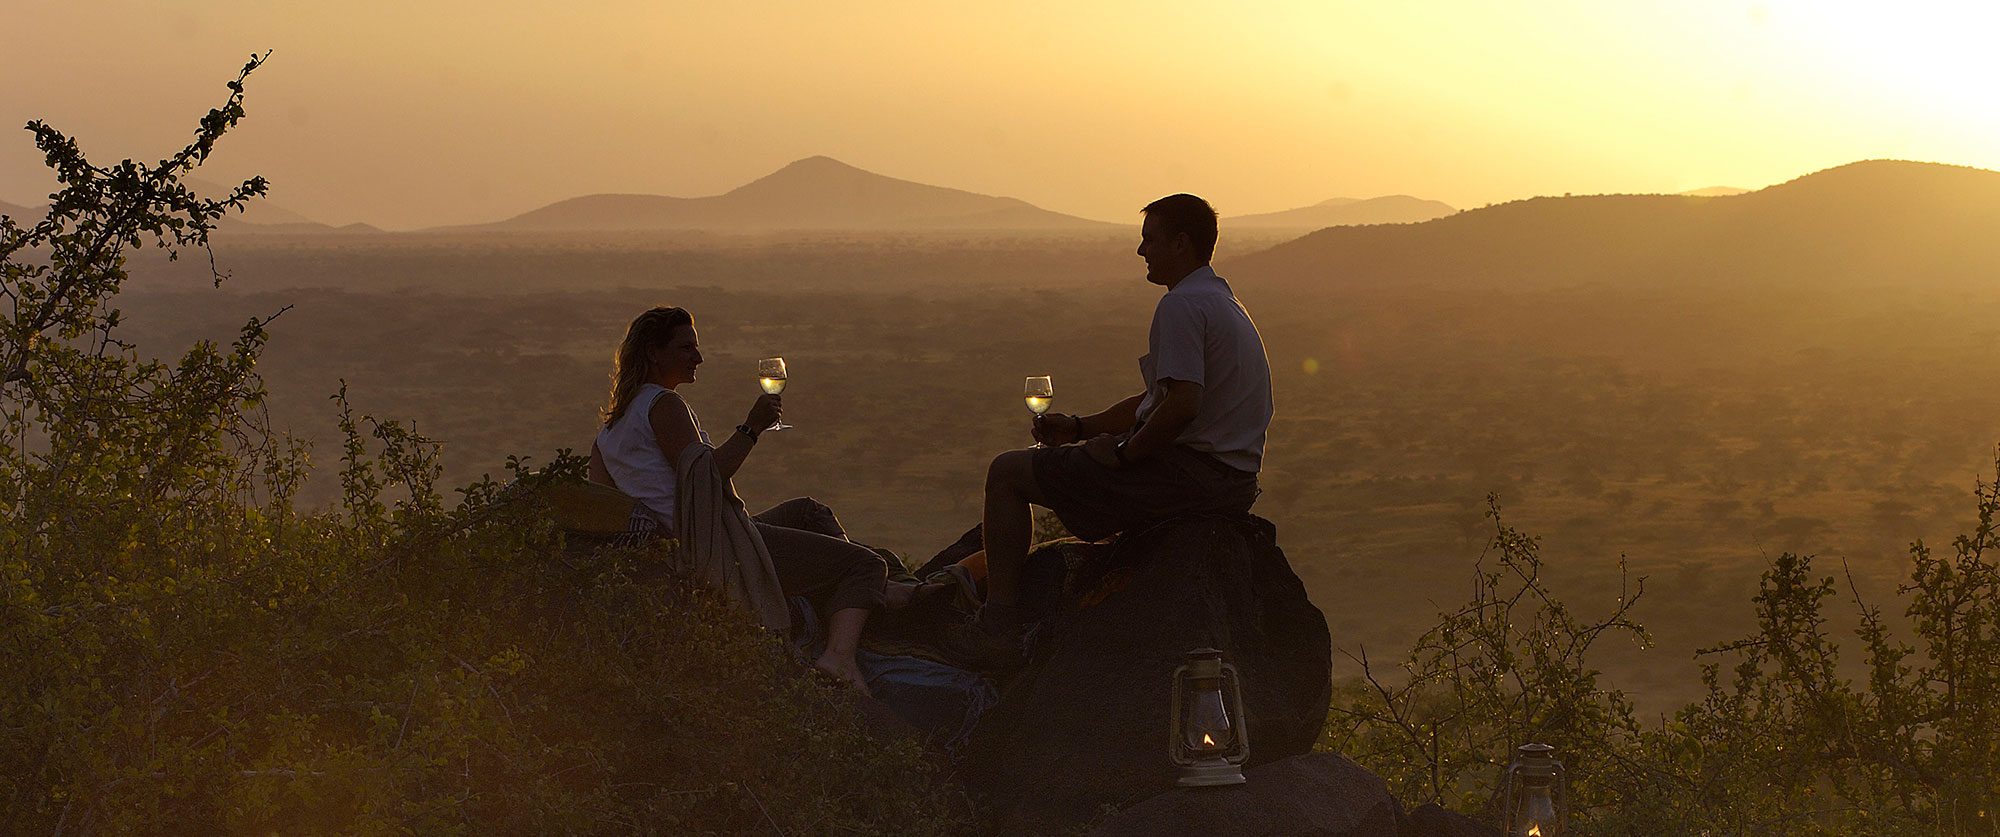 Handcrafted - food and wine - Africa - Vacation - Travel Specialist